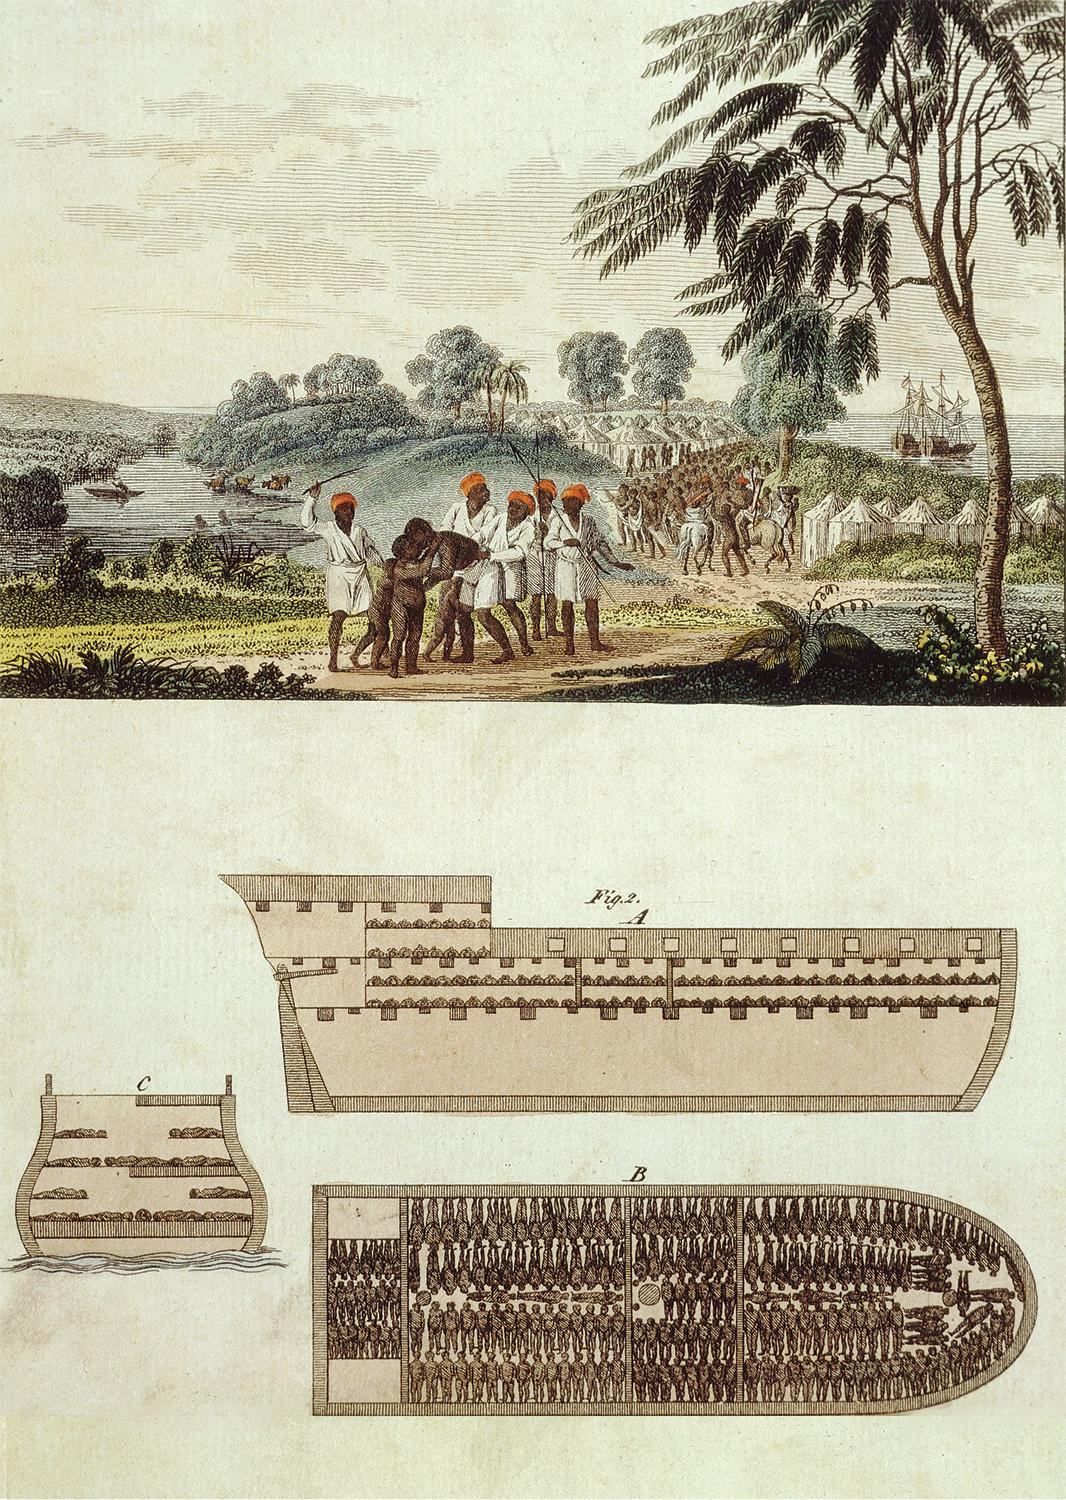 Colored engraving of layout of a slave ship